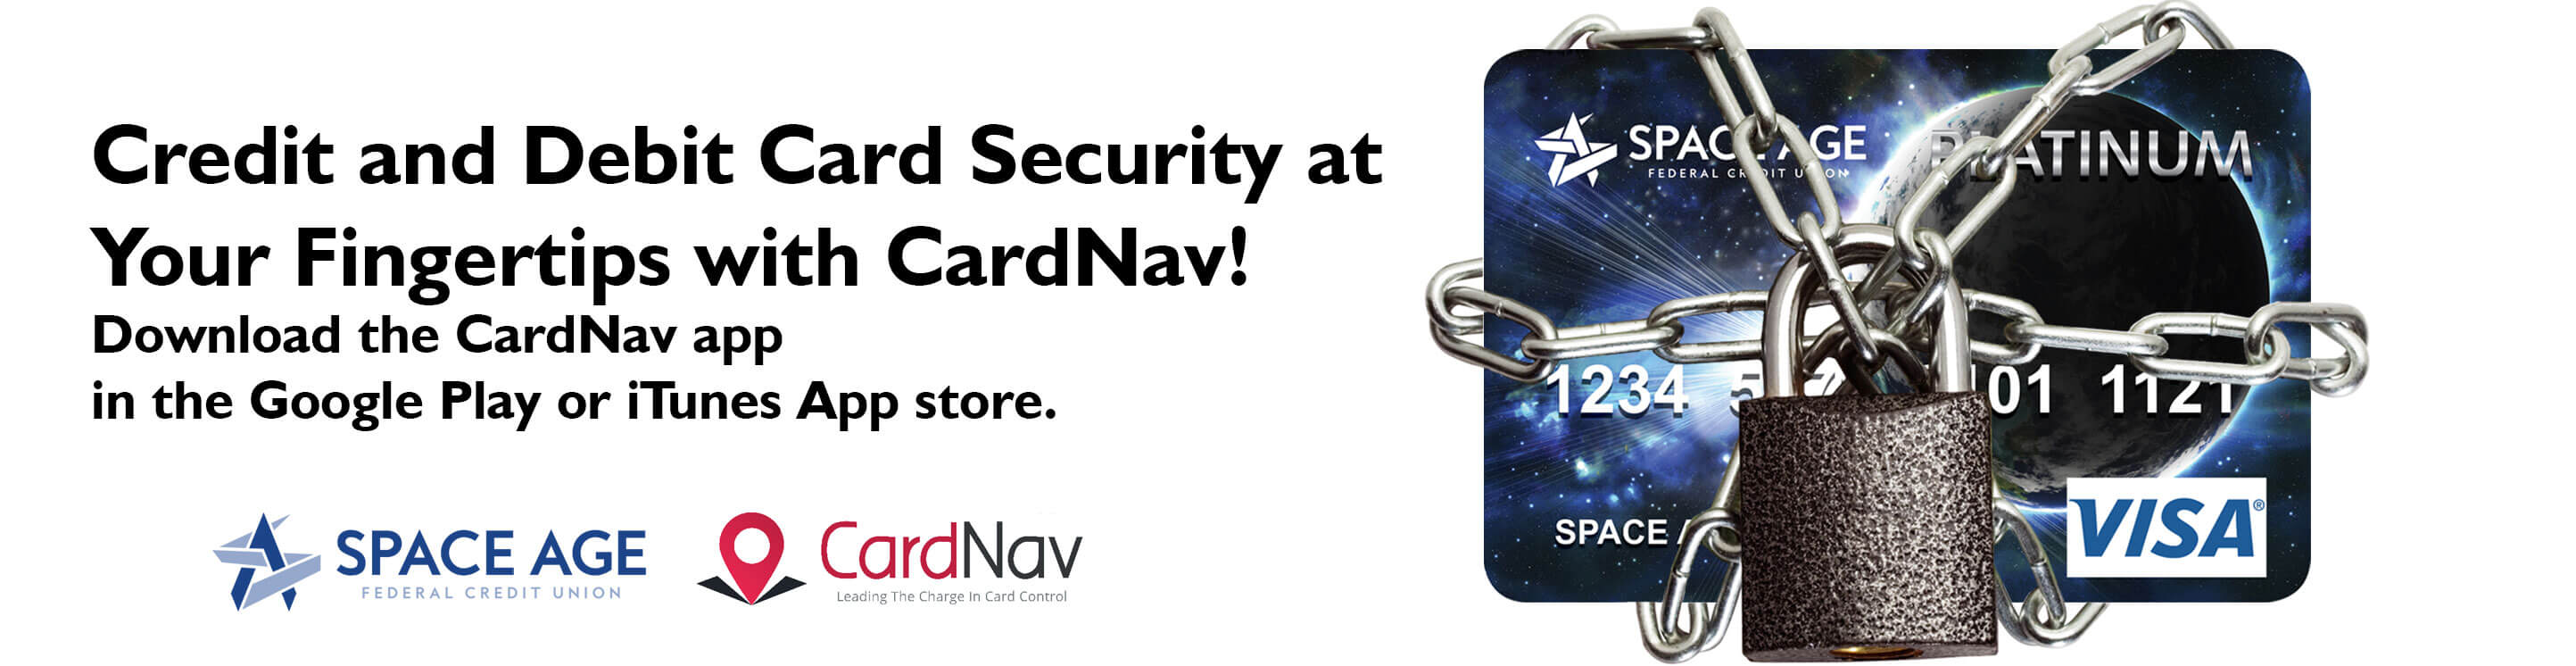 Credit and Debit Card Security at Your Fingertips with CardNav! Download the CardNav app in the Google Play or iTunes store.